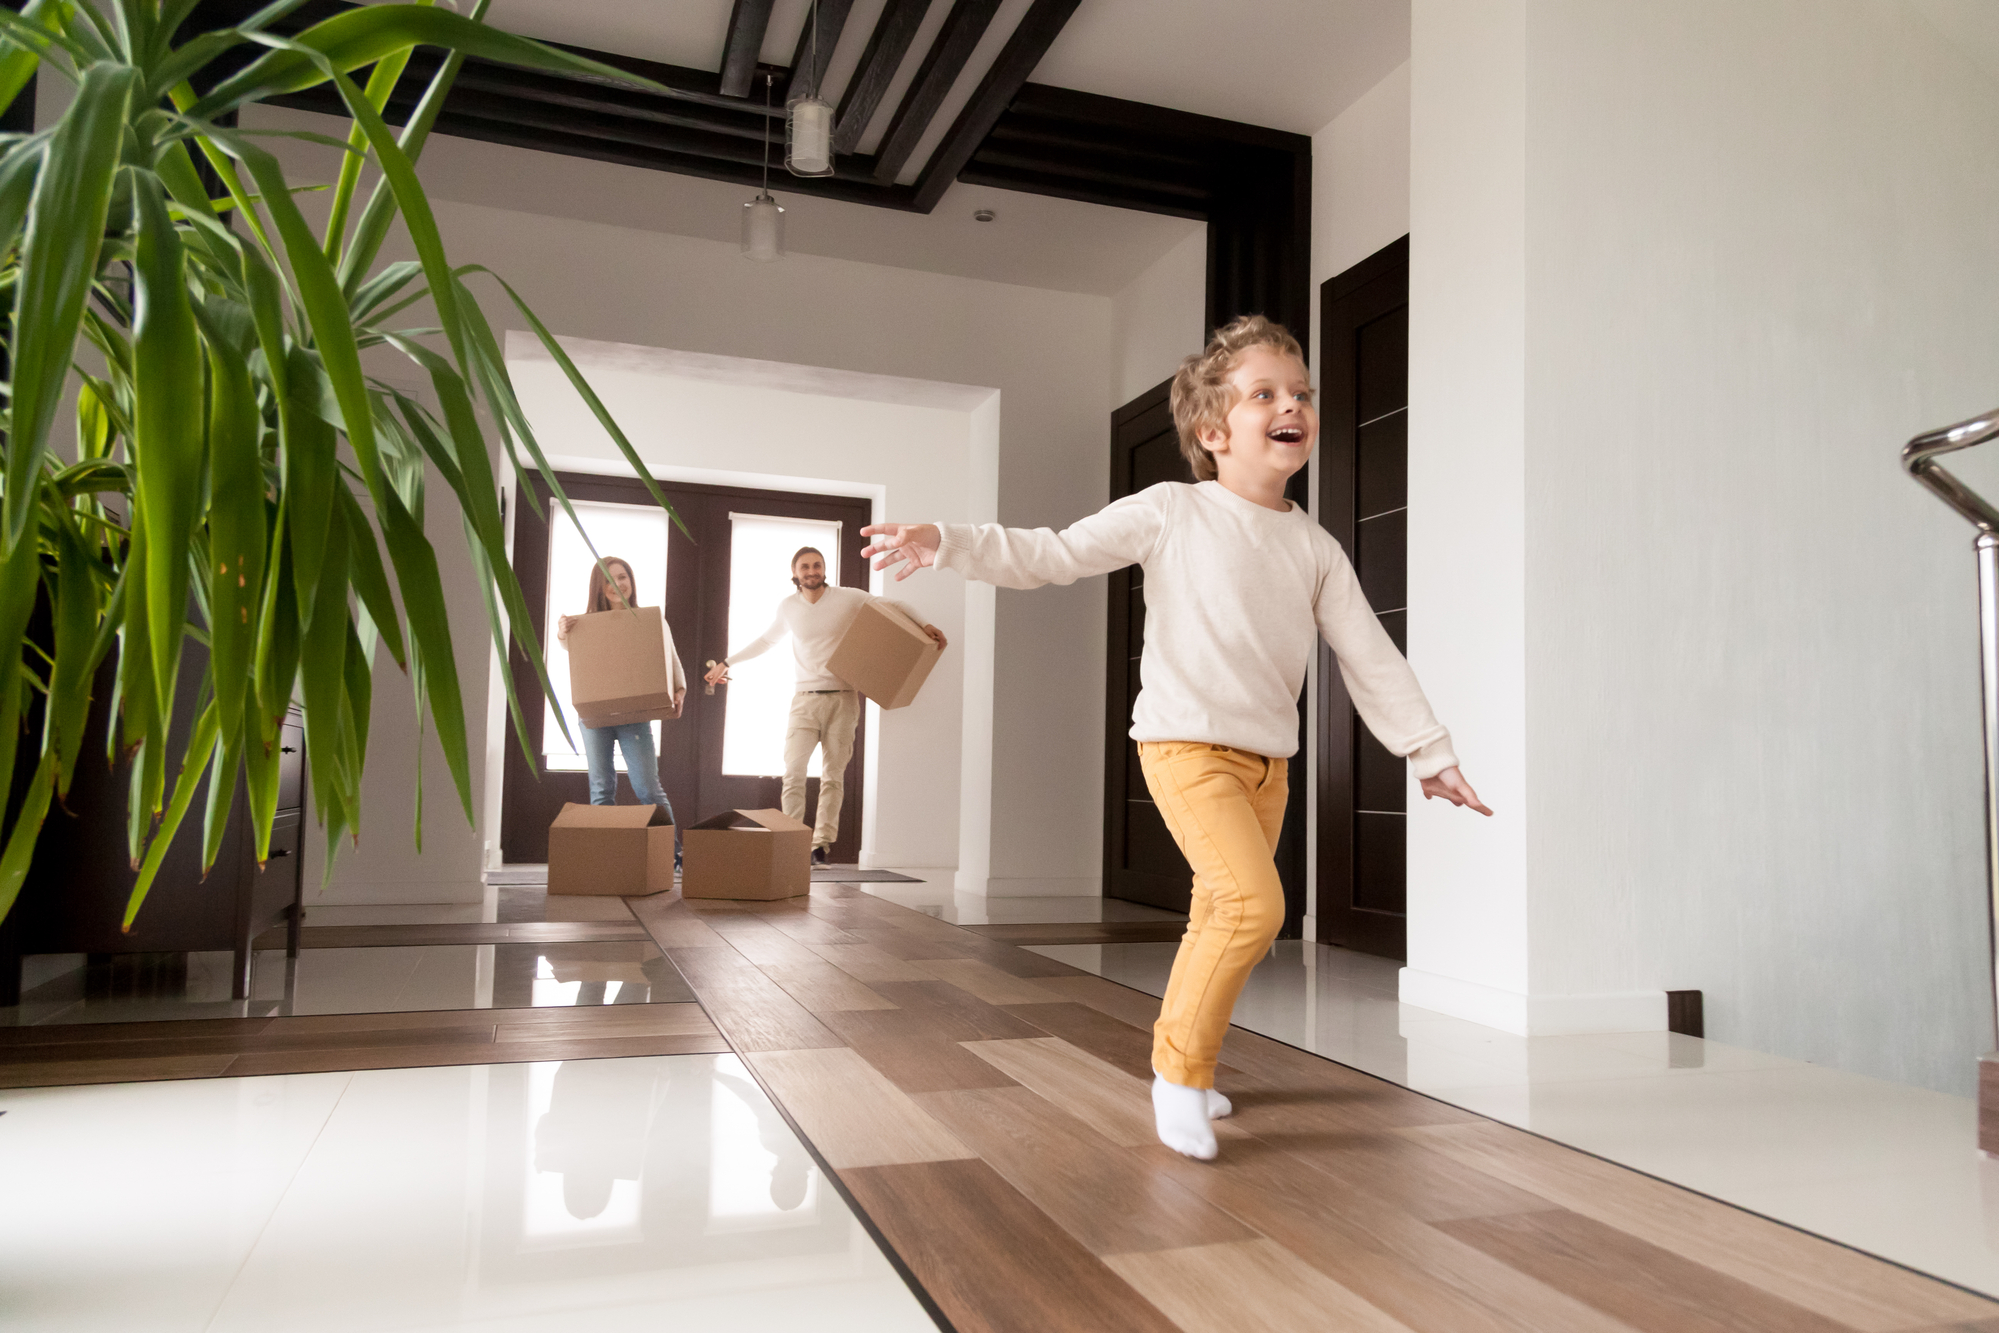 Happy family with little son arrived at their new house